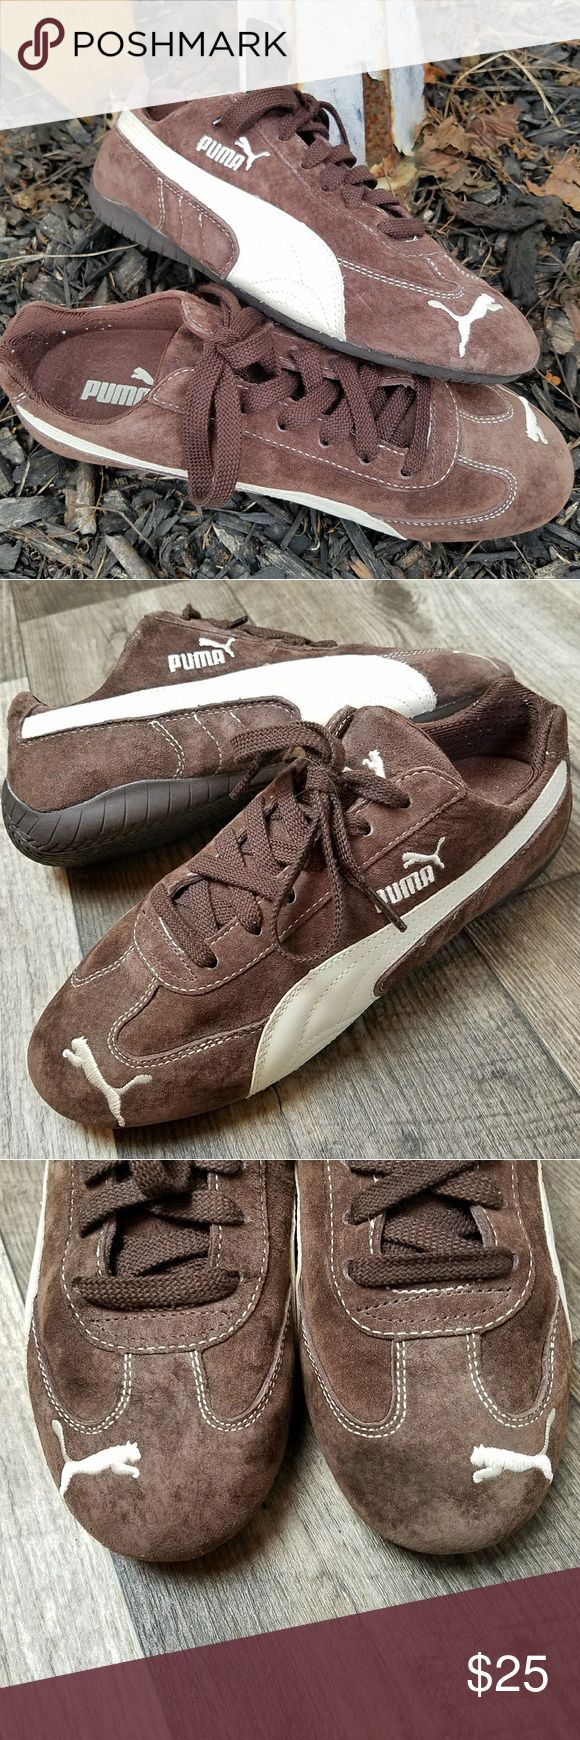 Puma • Speed Cat Suede Sneakers Chocolate brown suede pumas with white details.   Excellent gently preloved condition with no rips, stains or odors. No real signs of wear except some sock fuzzies inside!   No holds, trades or off-posh transactions. Puma Shoes Sneakers